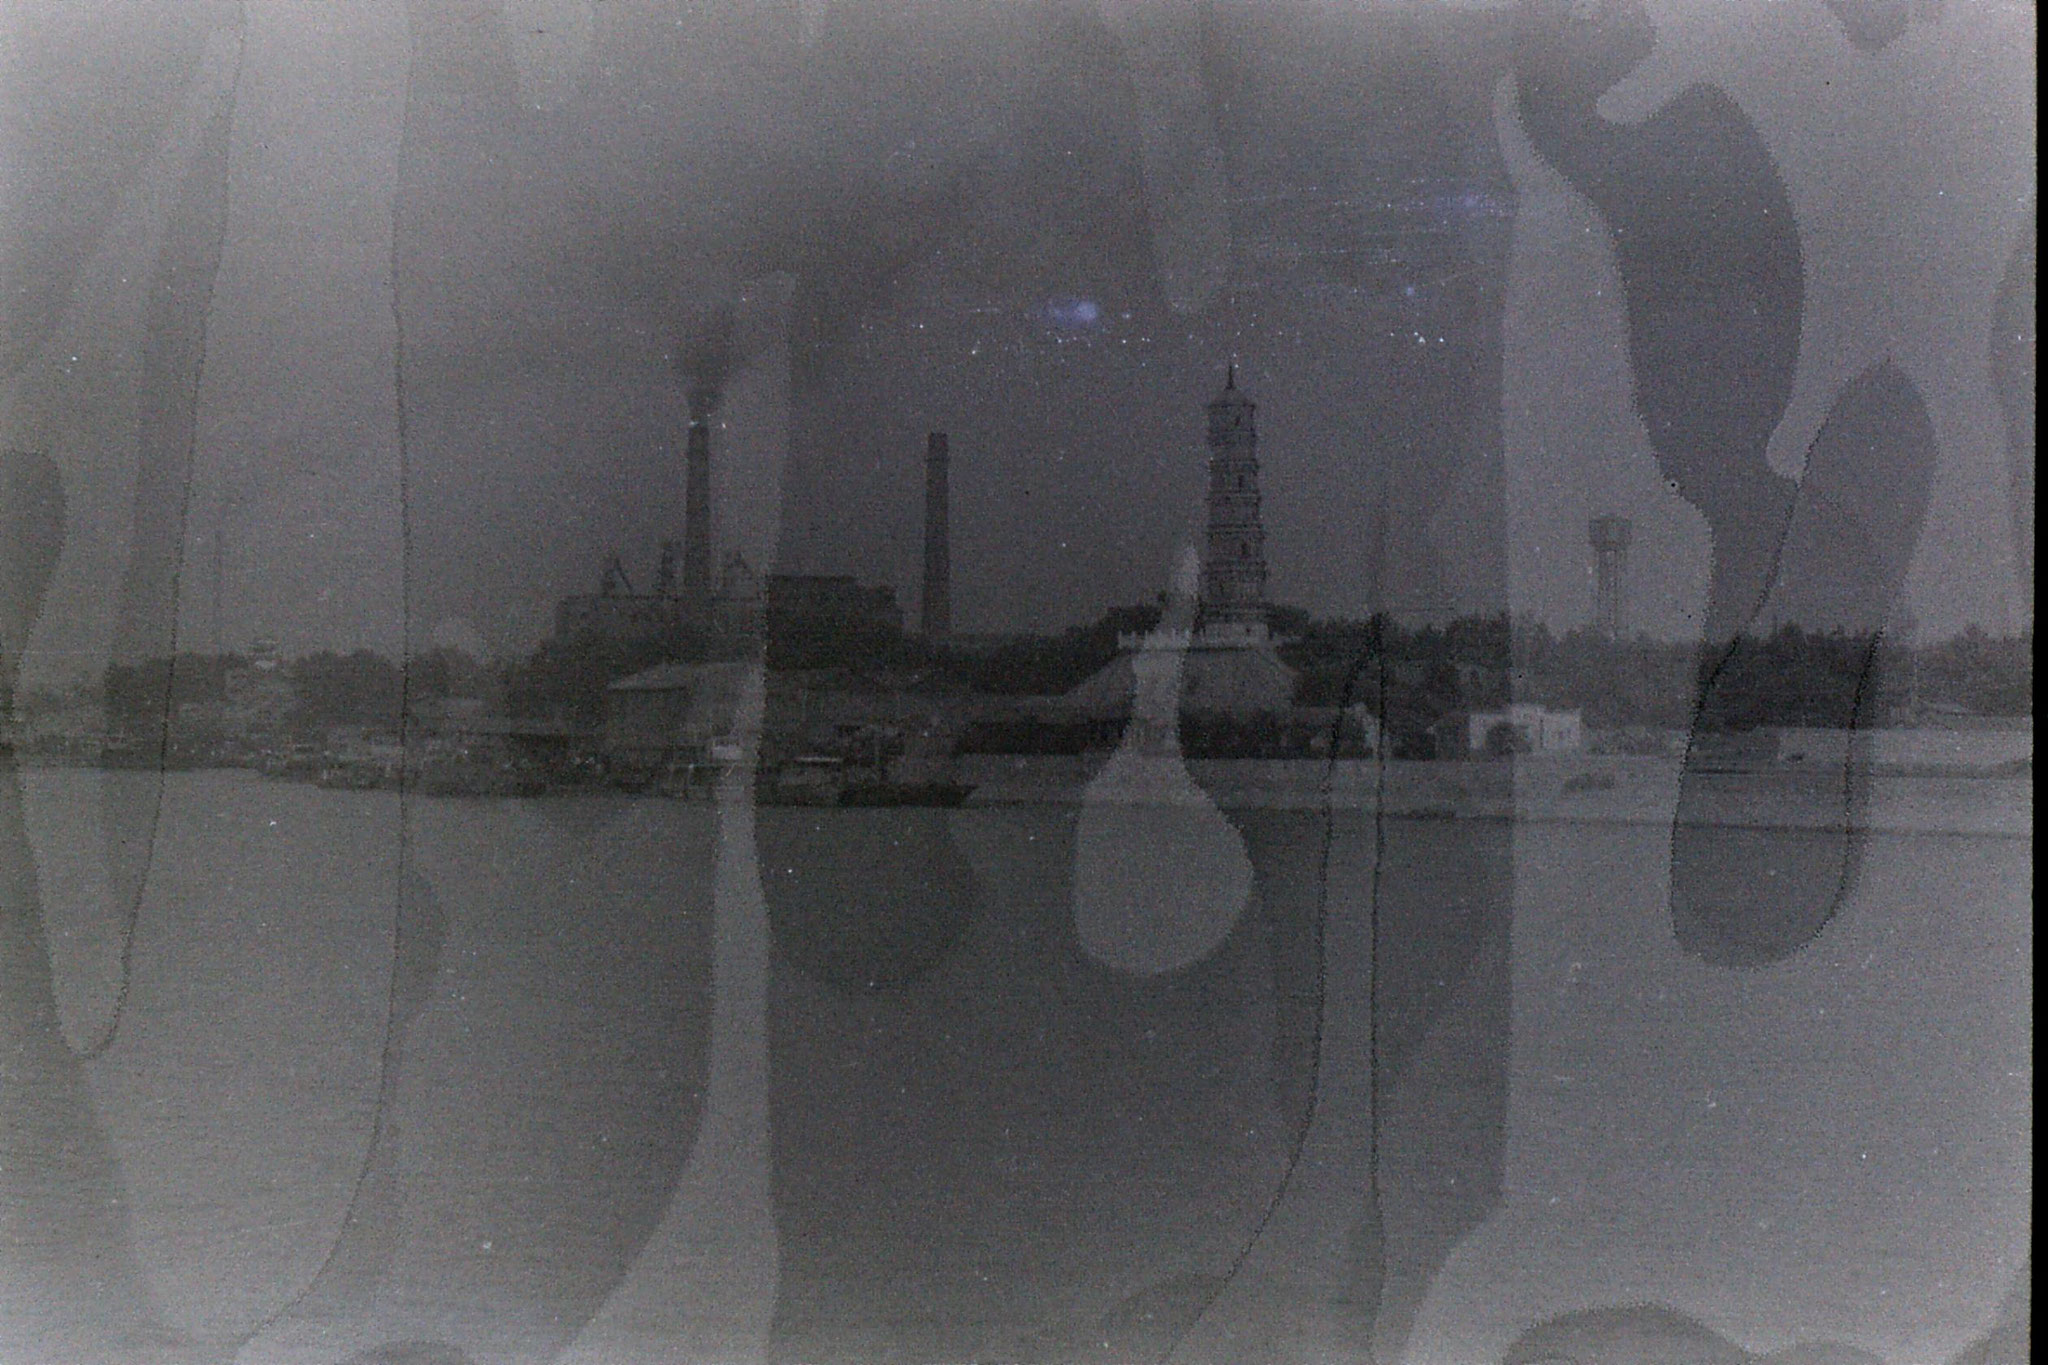 7/8/1989: 3: Jiujiang pagoda and power station